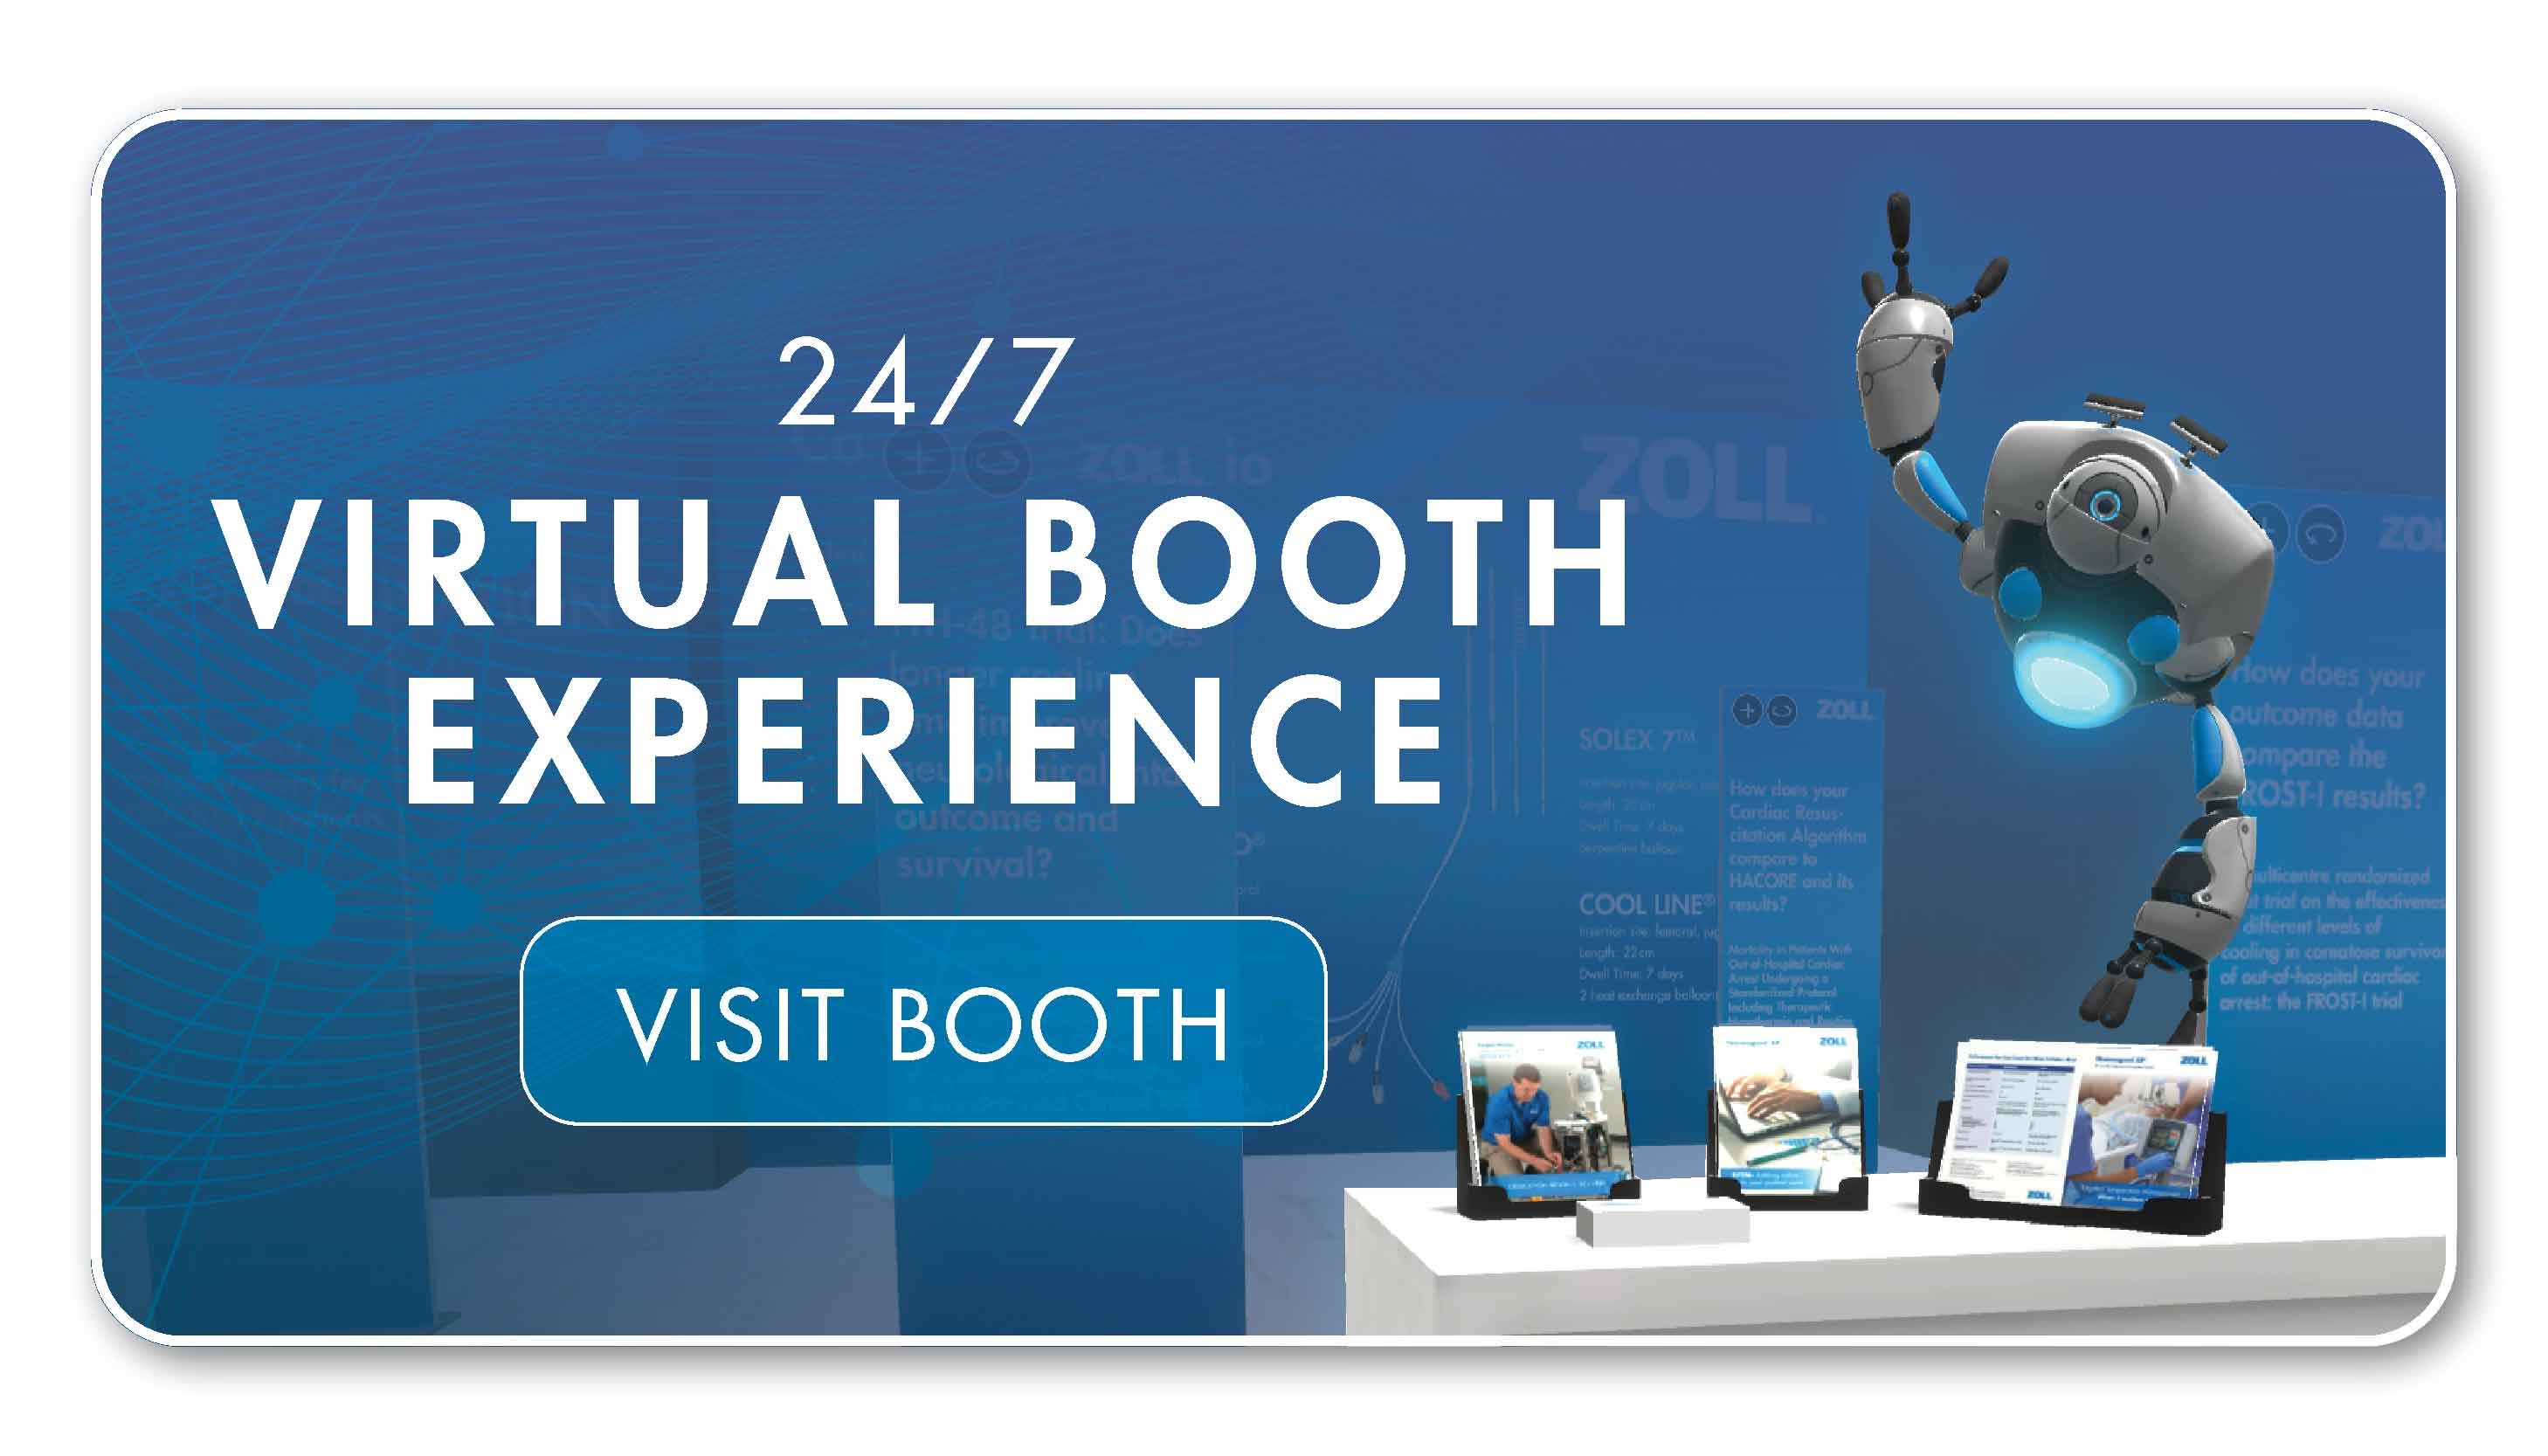 24/7 Virtual Booth Experience